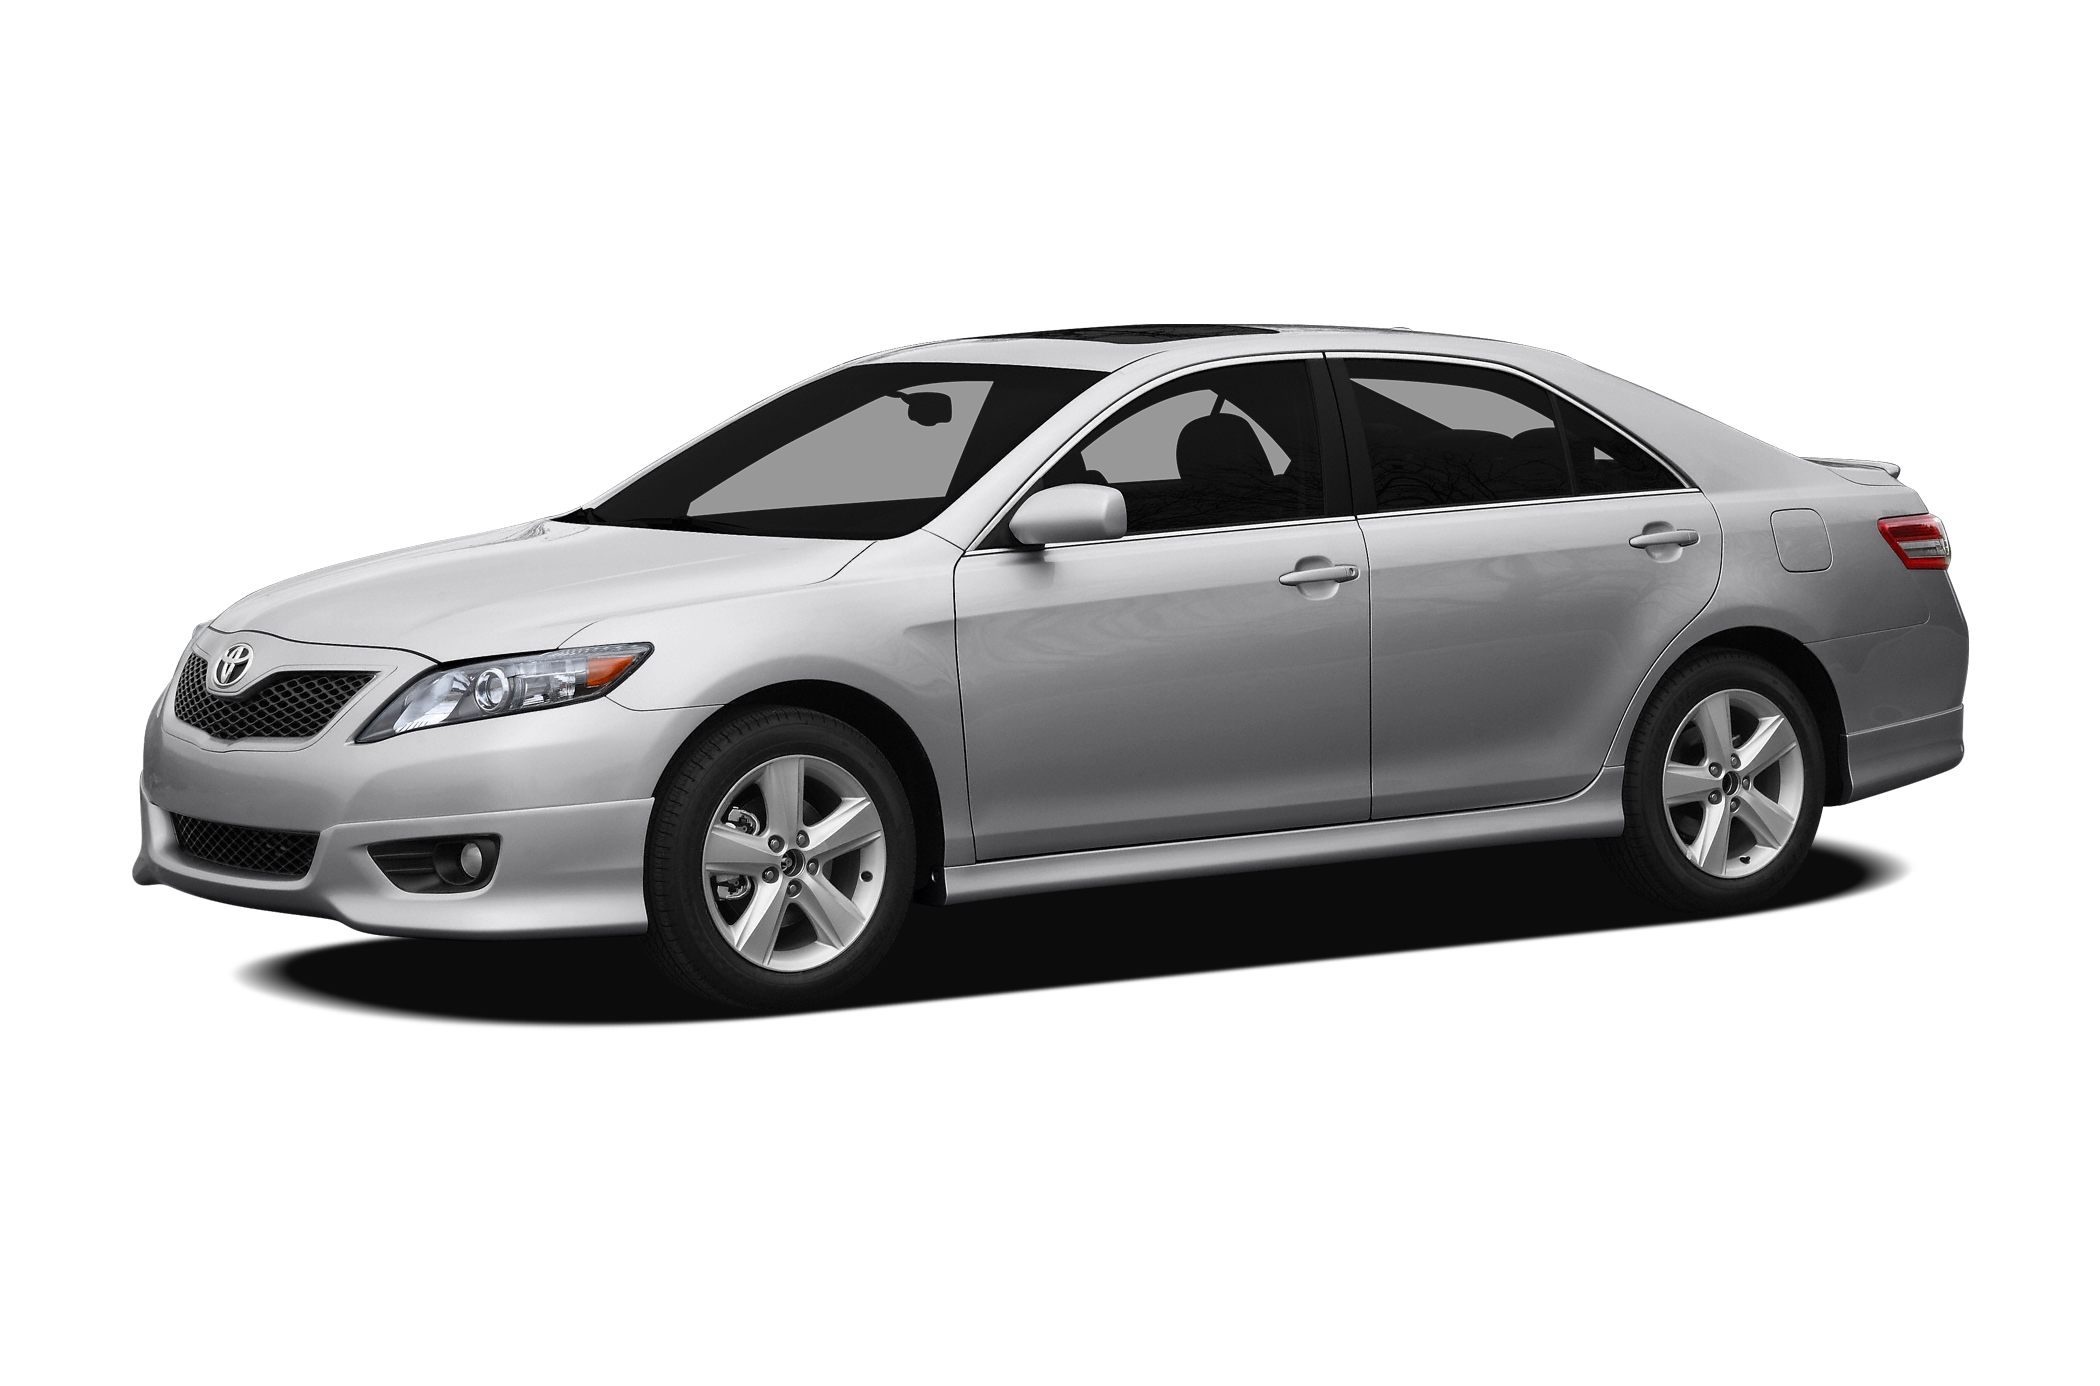 2010 Toyota Camry LE Sedan for sale in Stuart for $11,129 with 81,973 miles